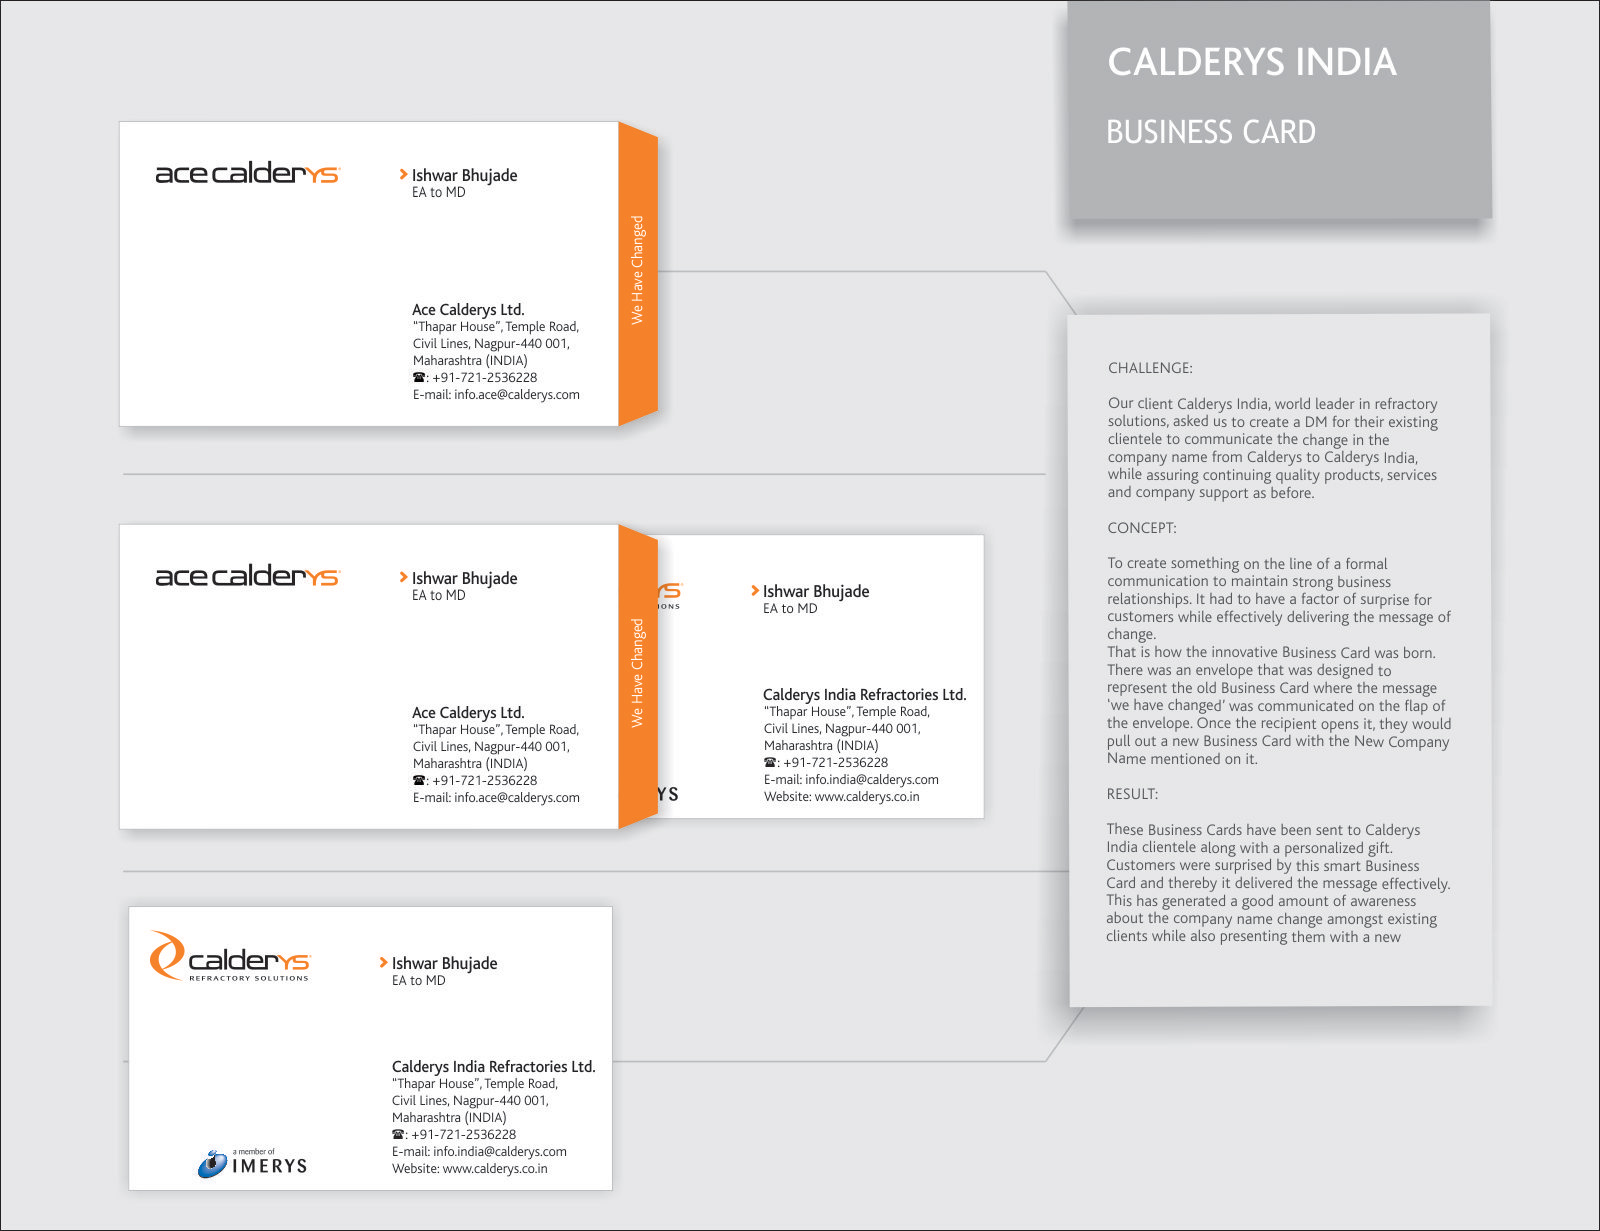 Calderys Direct Advert By Paradigm plus: Business Card | Ads of the ...